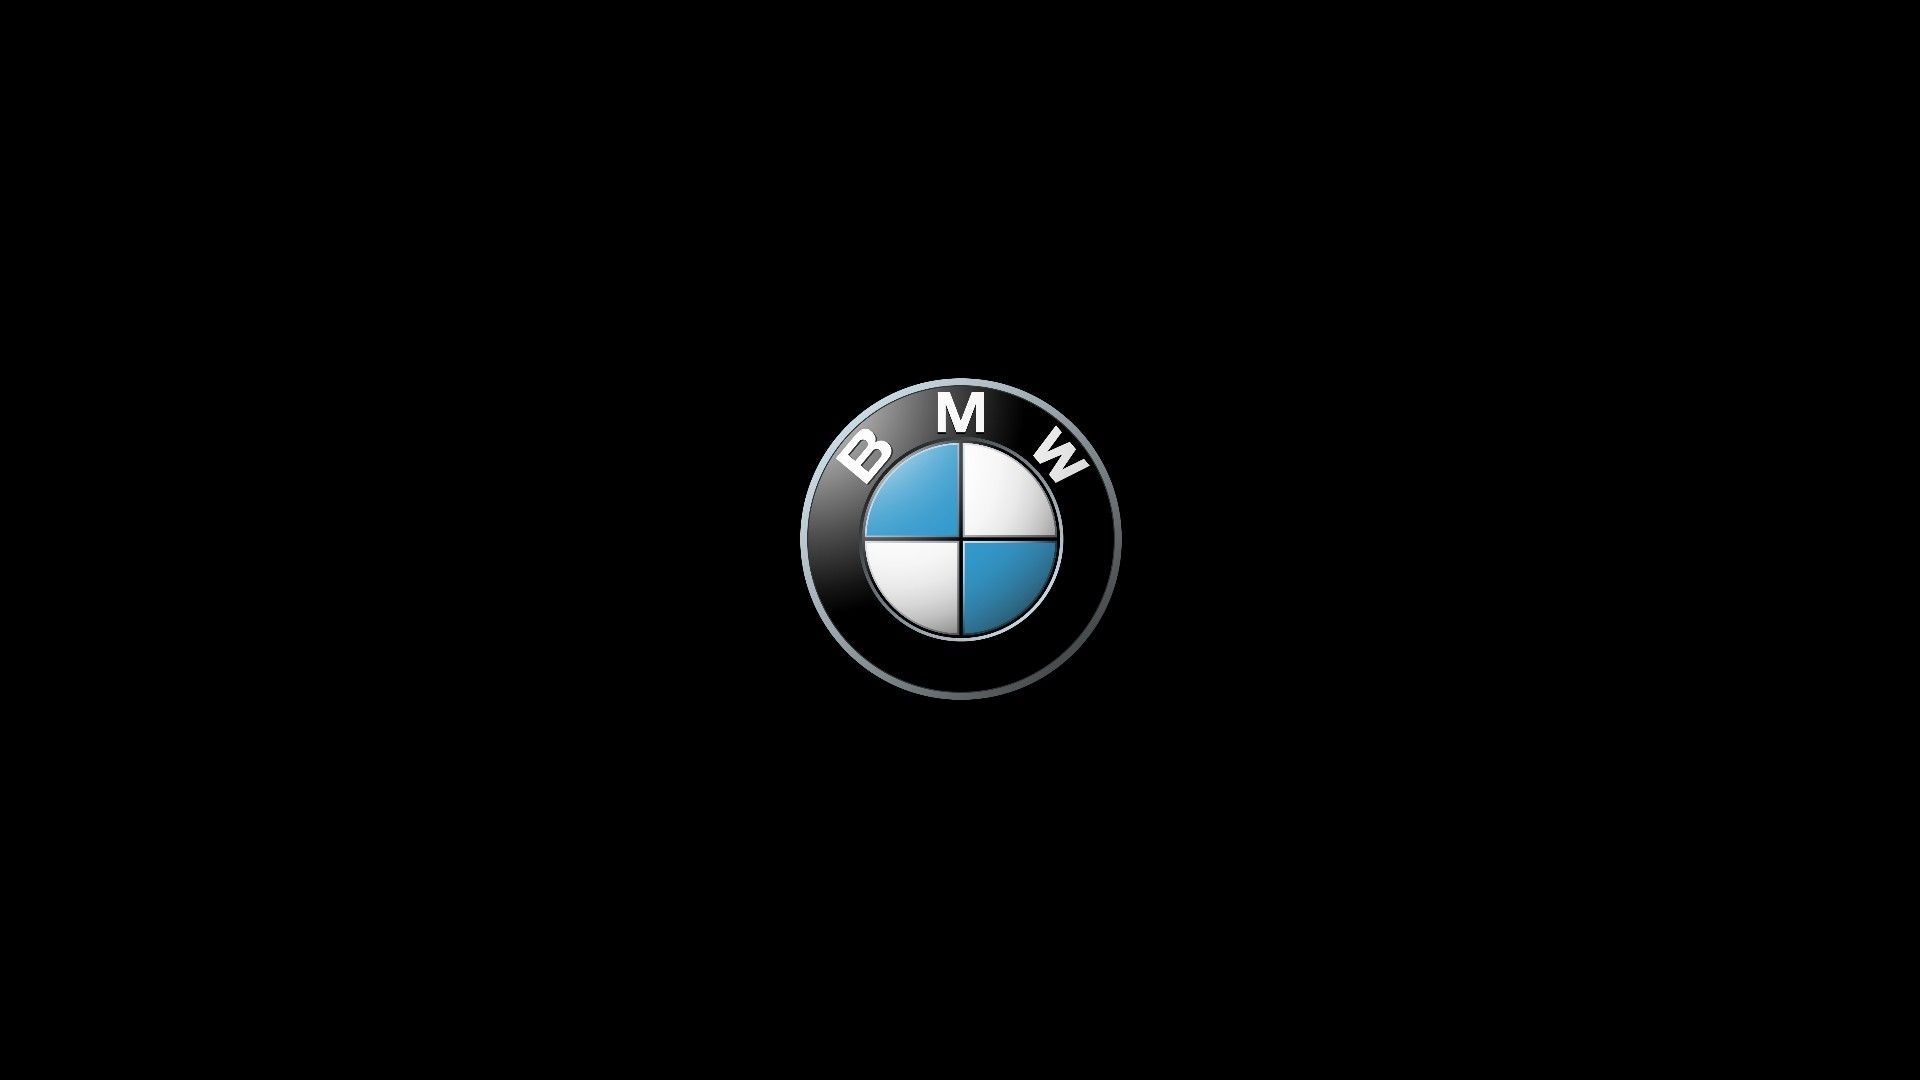 Bmw Logo Hd Wallpaper 70 Images In 2020 Bmw Wallpapers Bmw